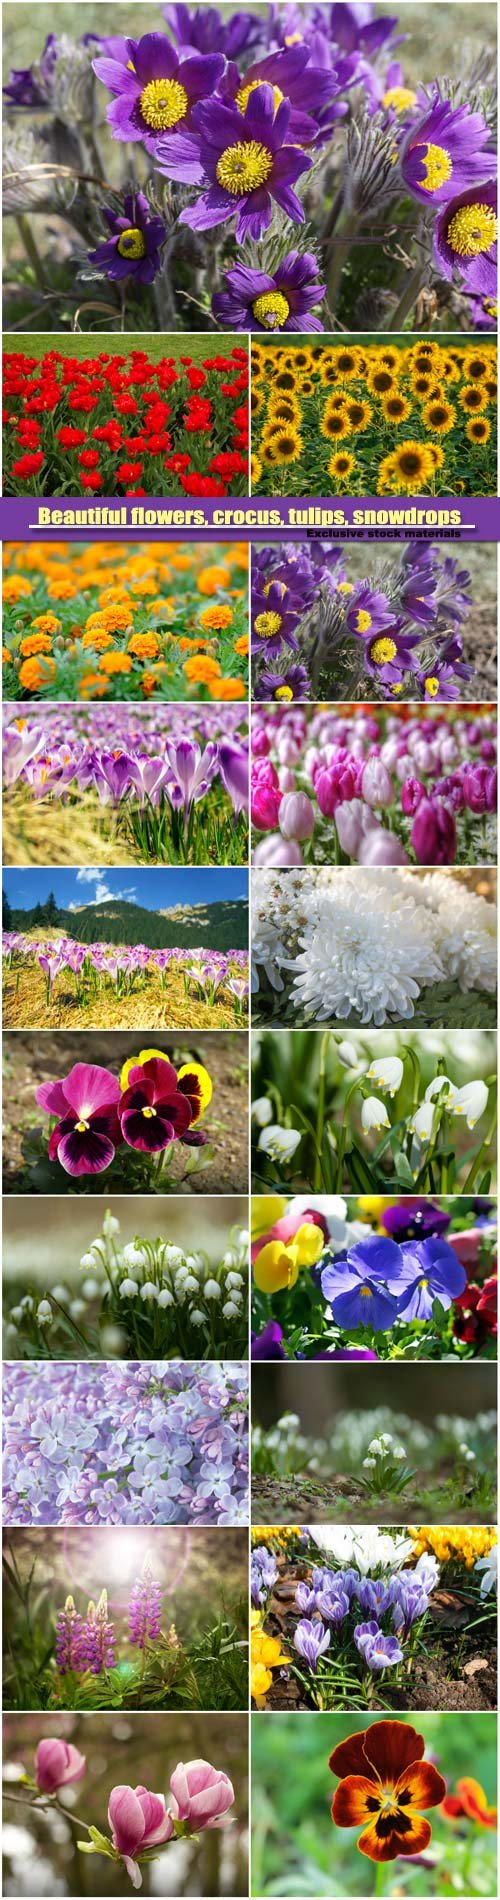 Beautiful flowers, crocus, tulips, snowdrops and lilac